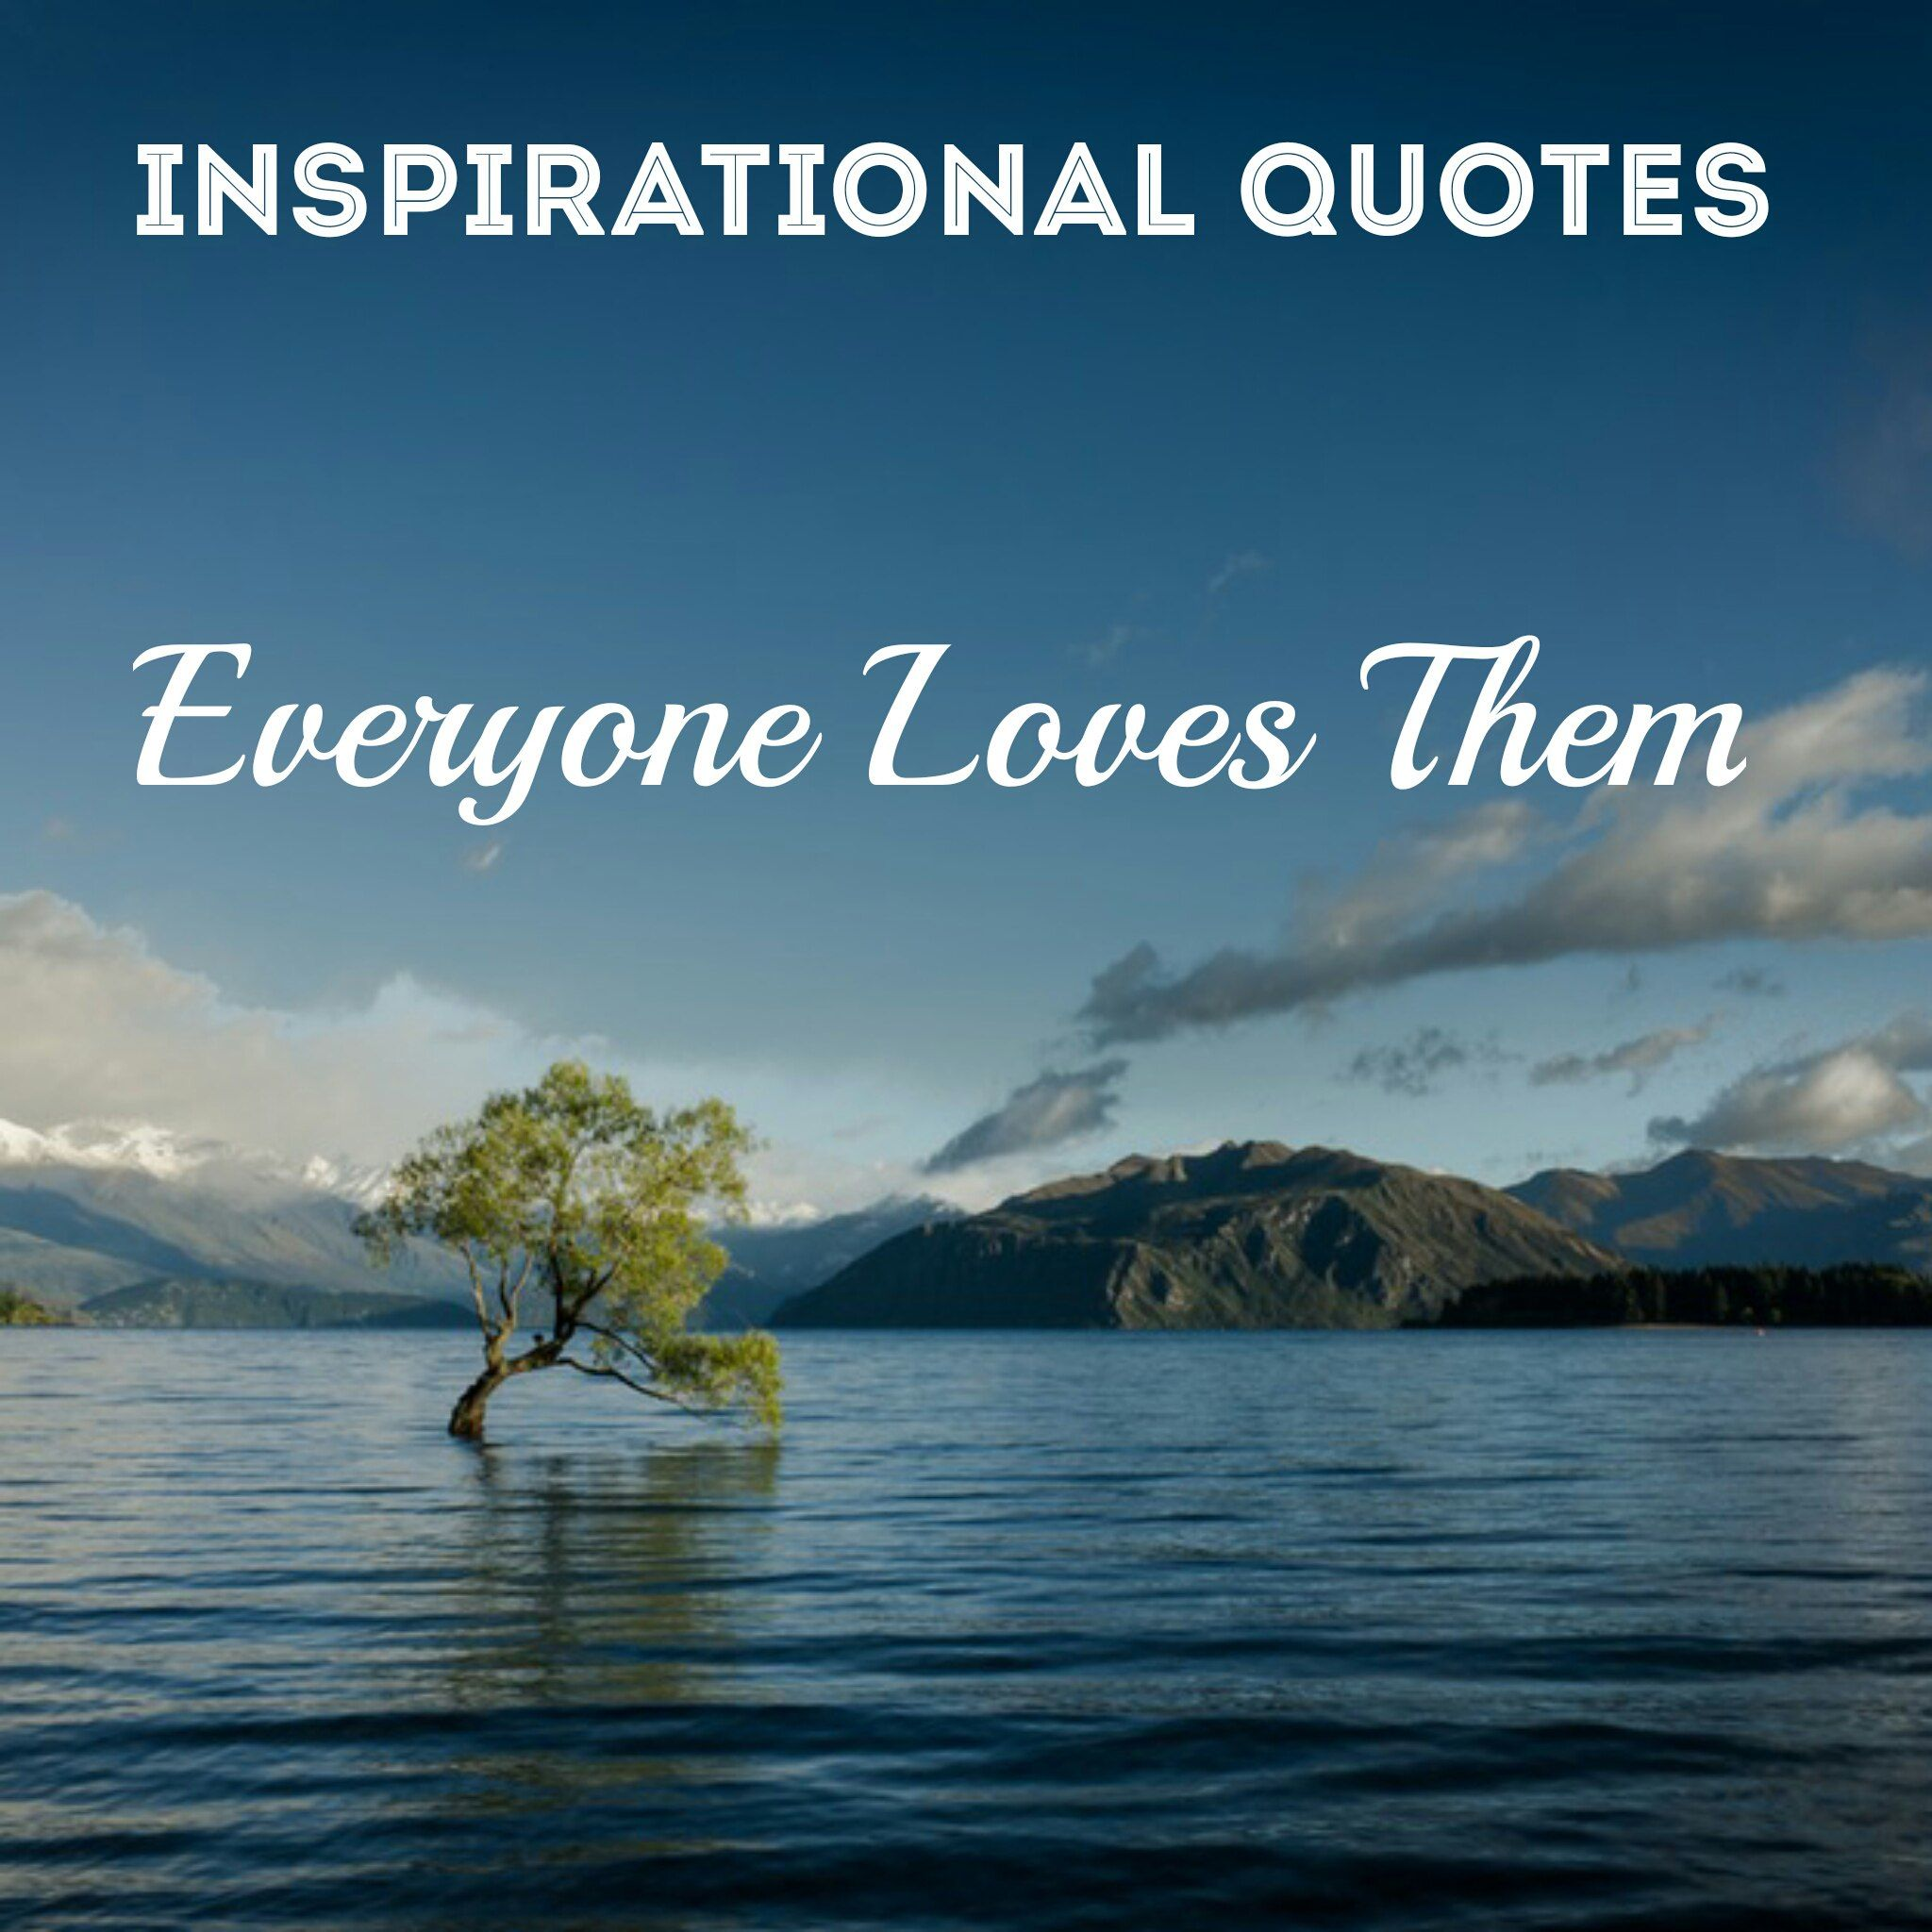 Famous Phrases About Life 154 Best Inspirational Quotes & Sayings Of All Time